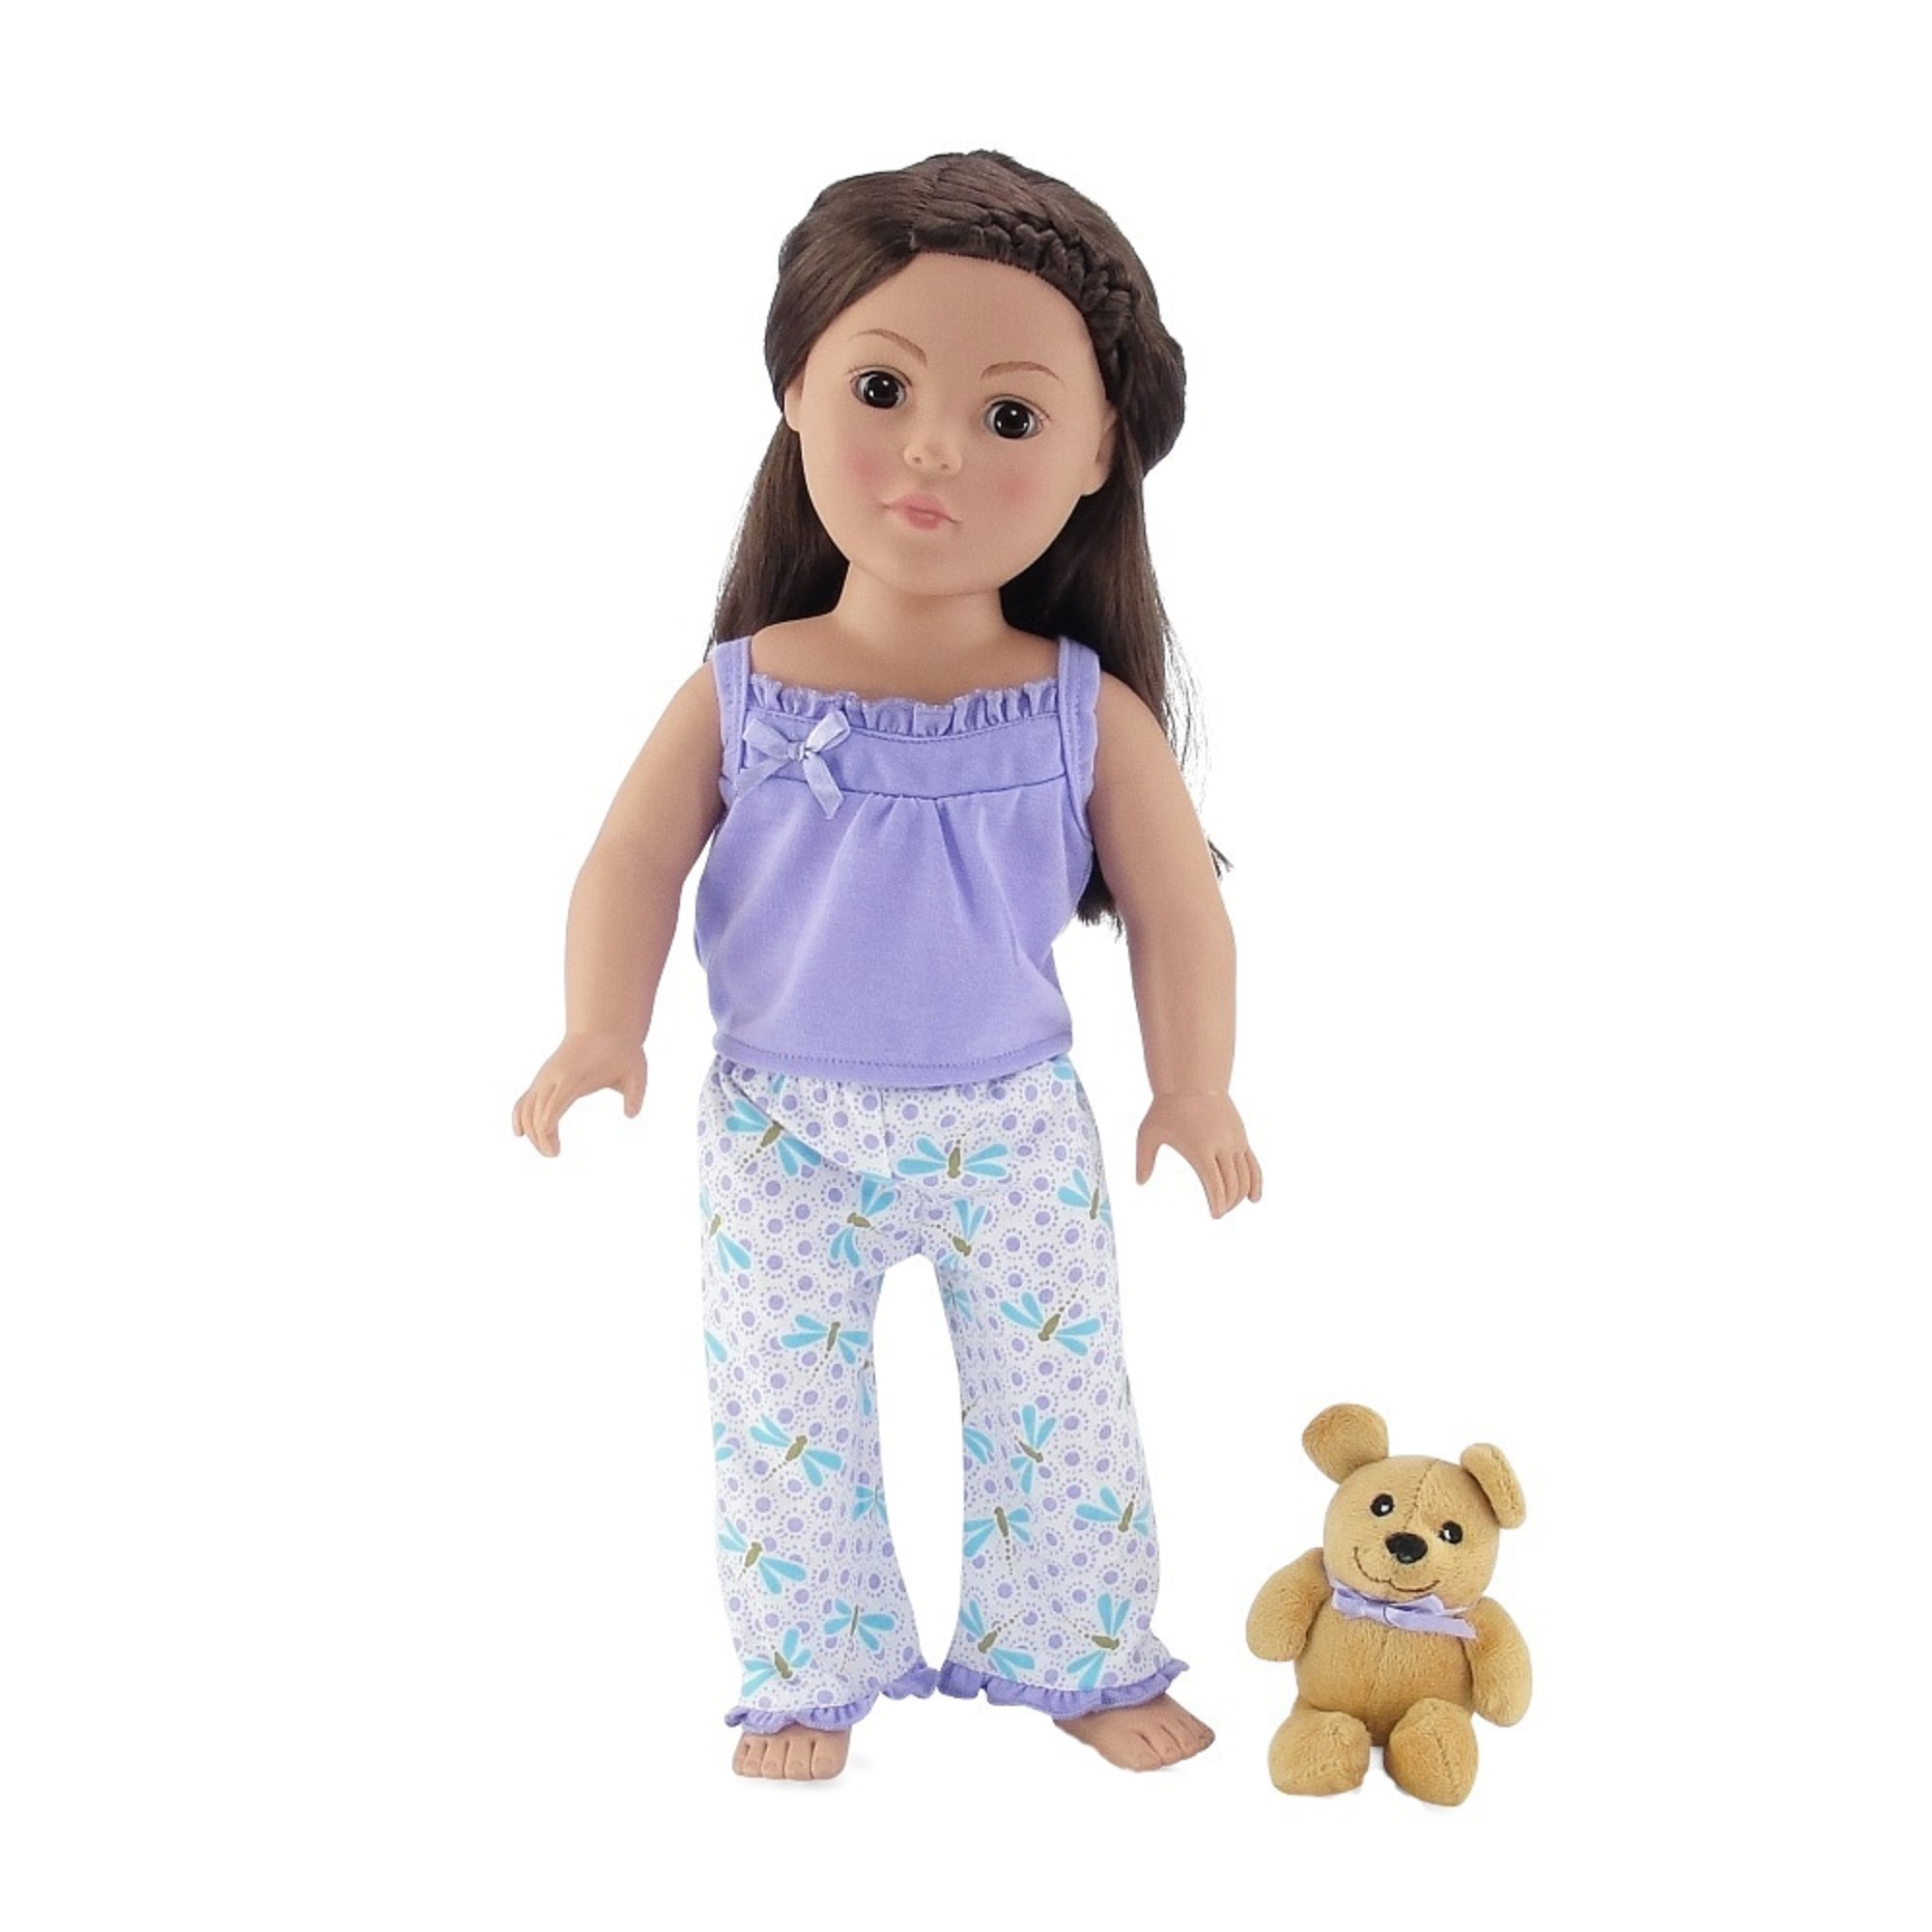 18 Inch Doll Clothes |Adorable Lavender and Blue Dragonfly Print 2 Piece Tank Pajama Outfit with Teddy Bear | Fits American Girl Dolls